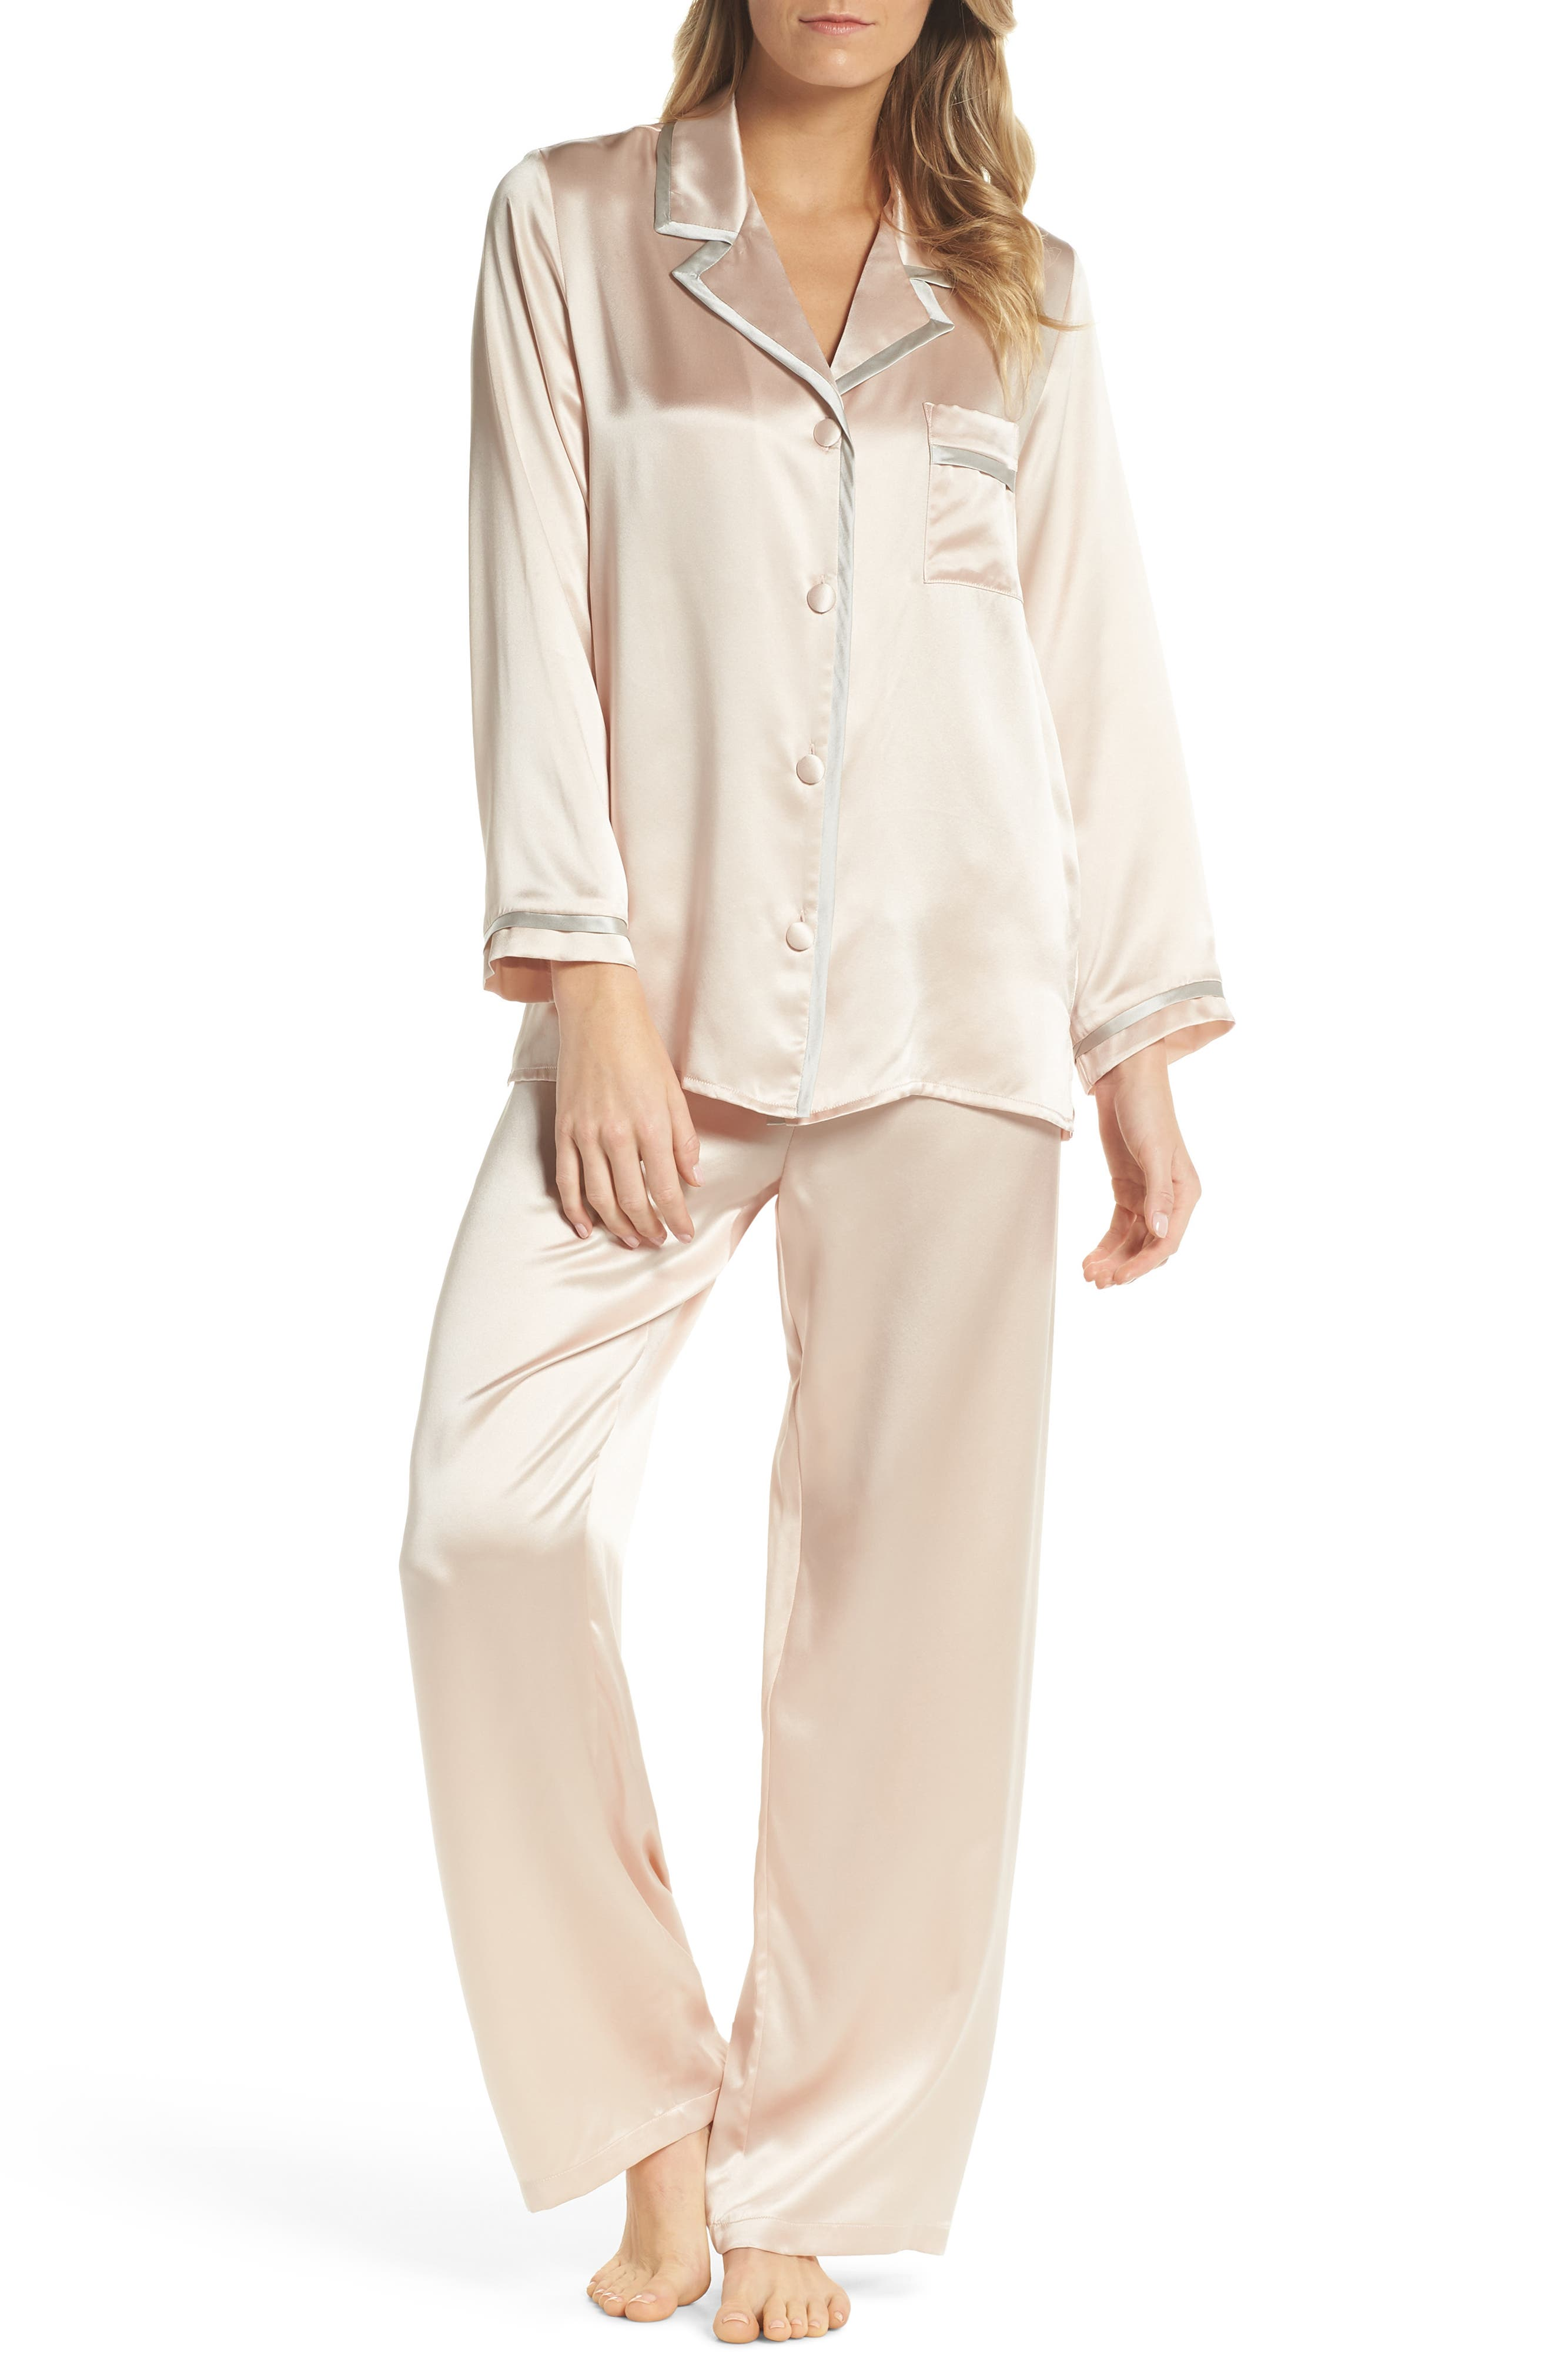 Coco Silk Pajamas,                         Main,                         color,